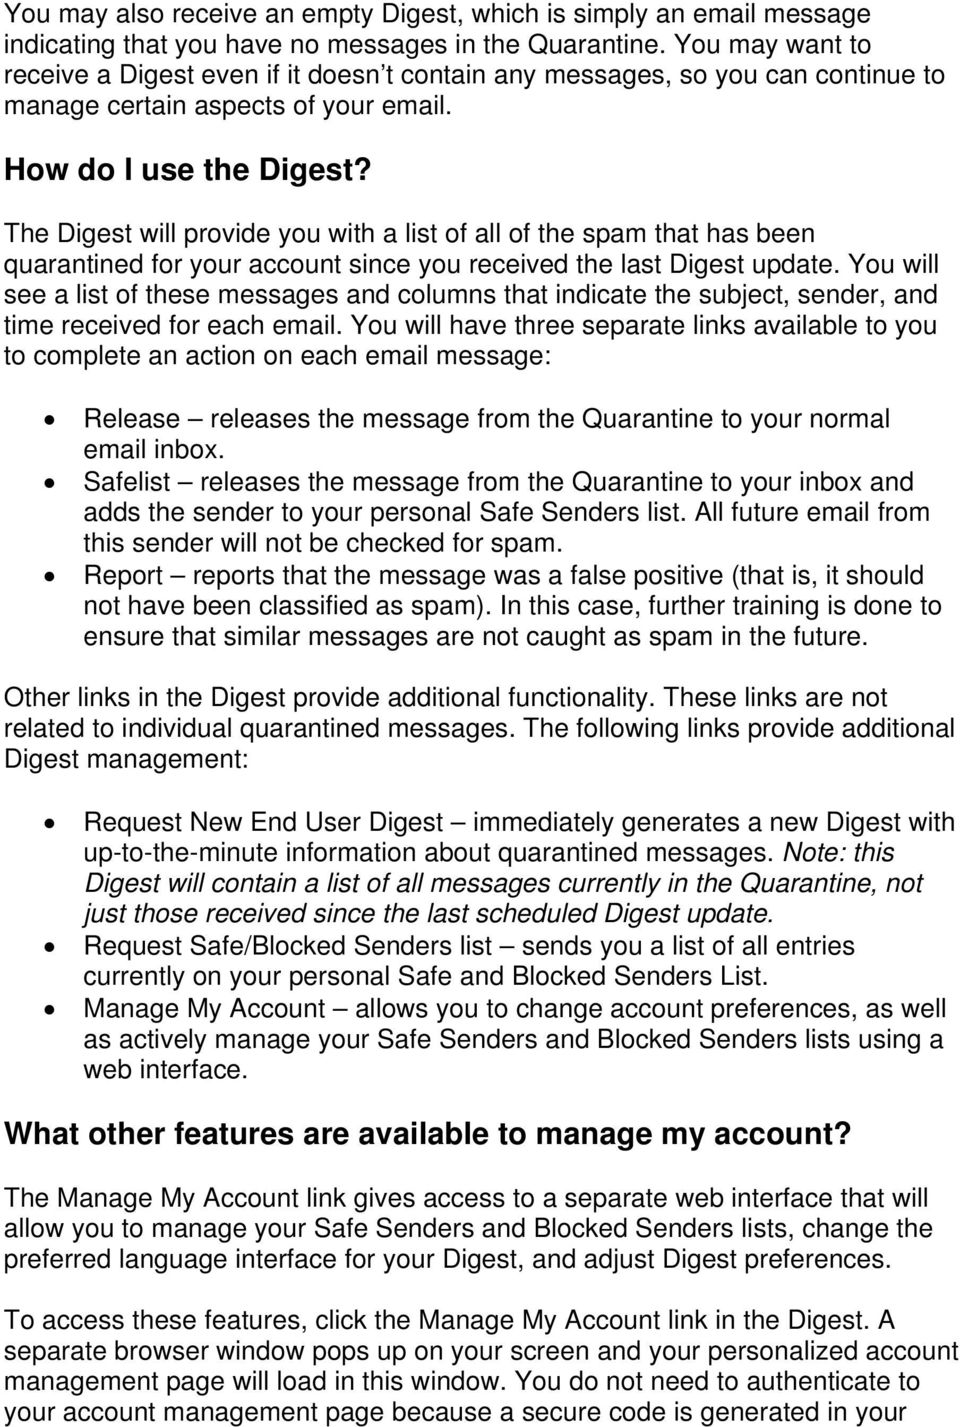 The Digest will provide you with a list of all of the spam that has been quarantined for your account since you received the last Digest update.